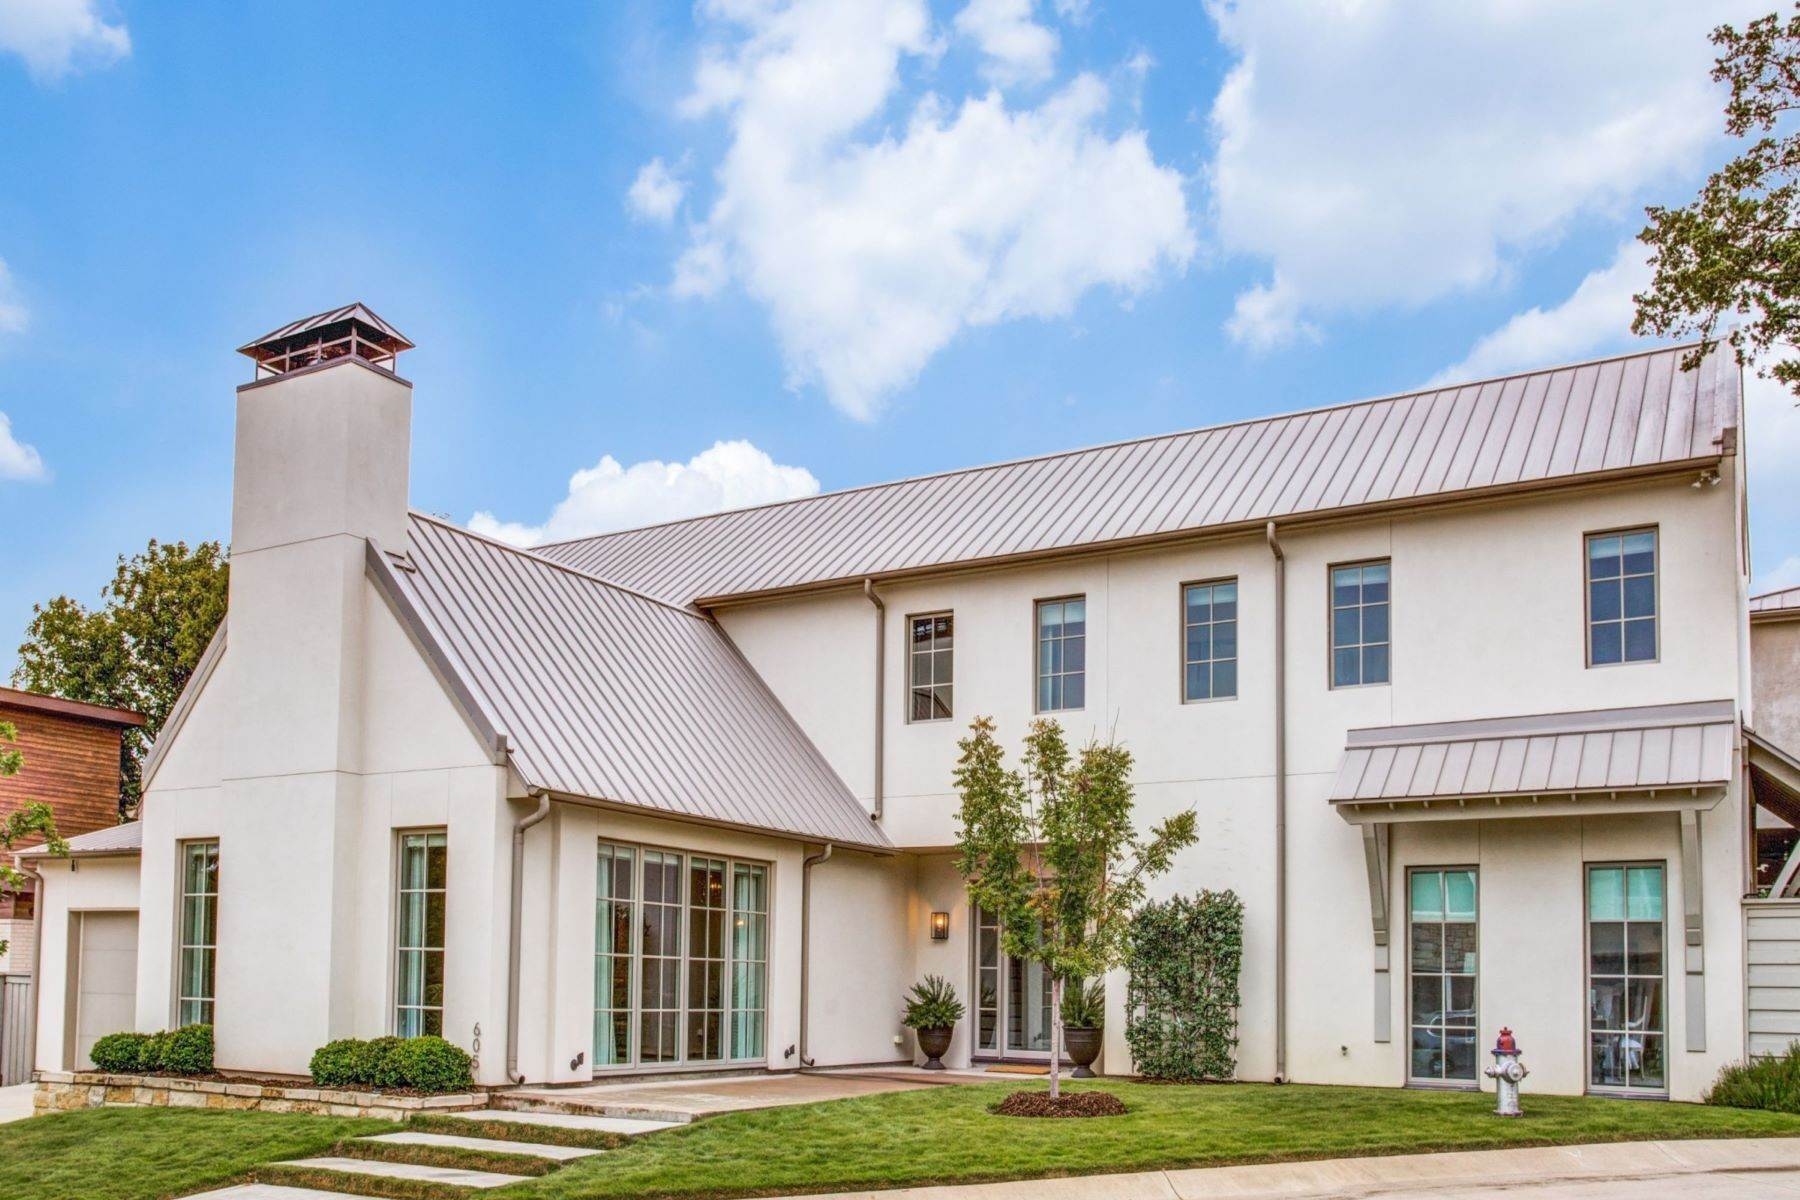 Single Family Homes for Sale at Transitional Home in Quiet Kessler Reserve 605 Kessler Reserve Court Dallas, Texas 75208 United States